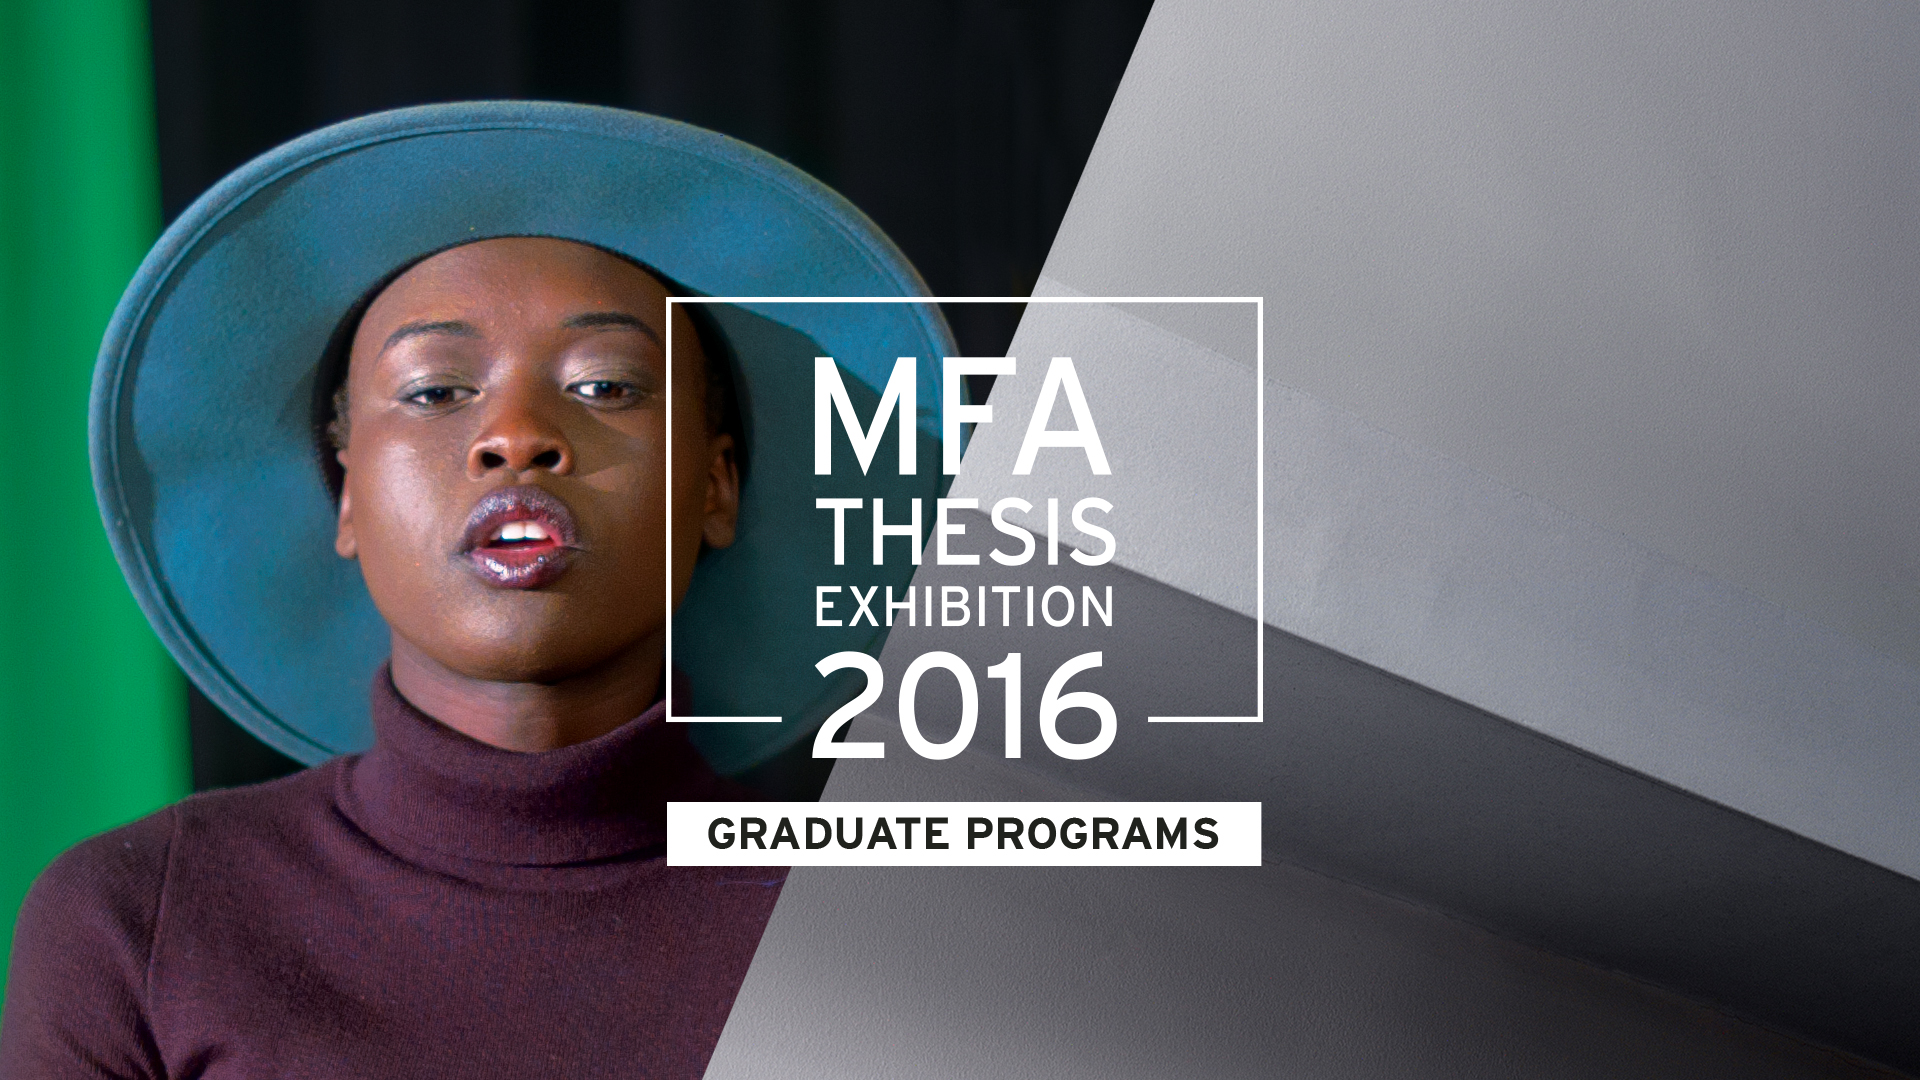 MFA Thesis Exhibition 2016